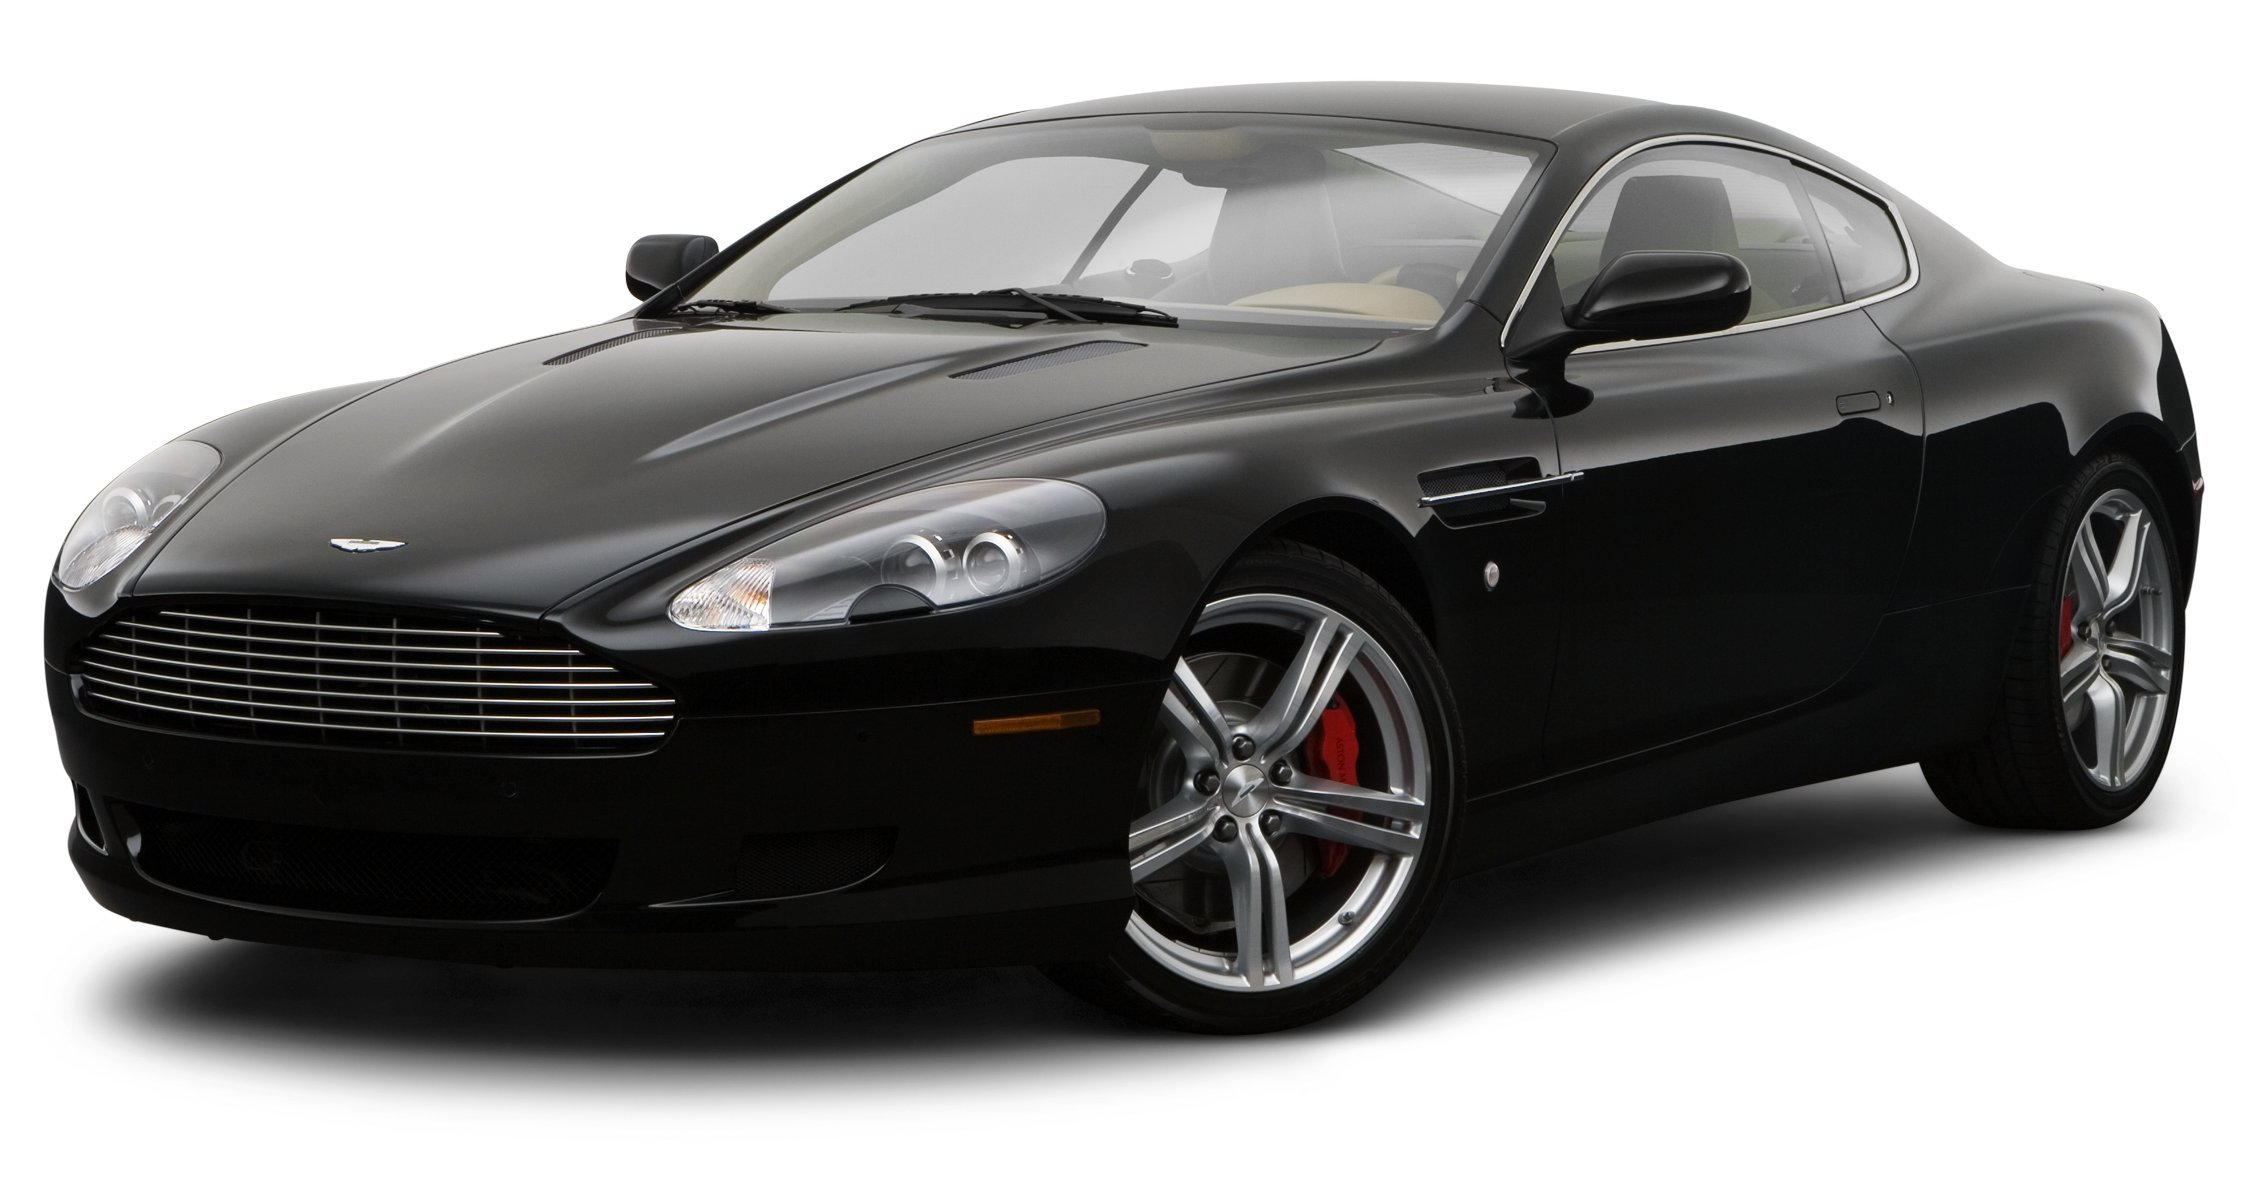 2009 Aston Martin DB9 2 Door Coupe Automatic Transmission